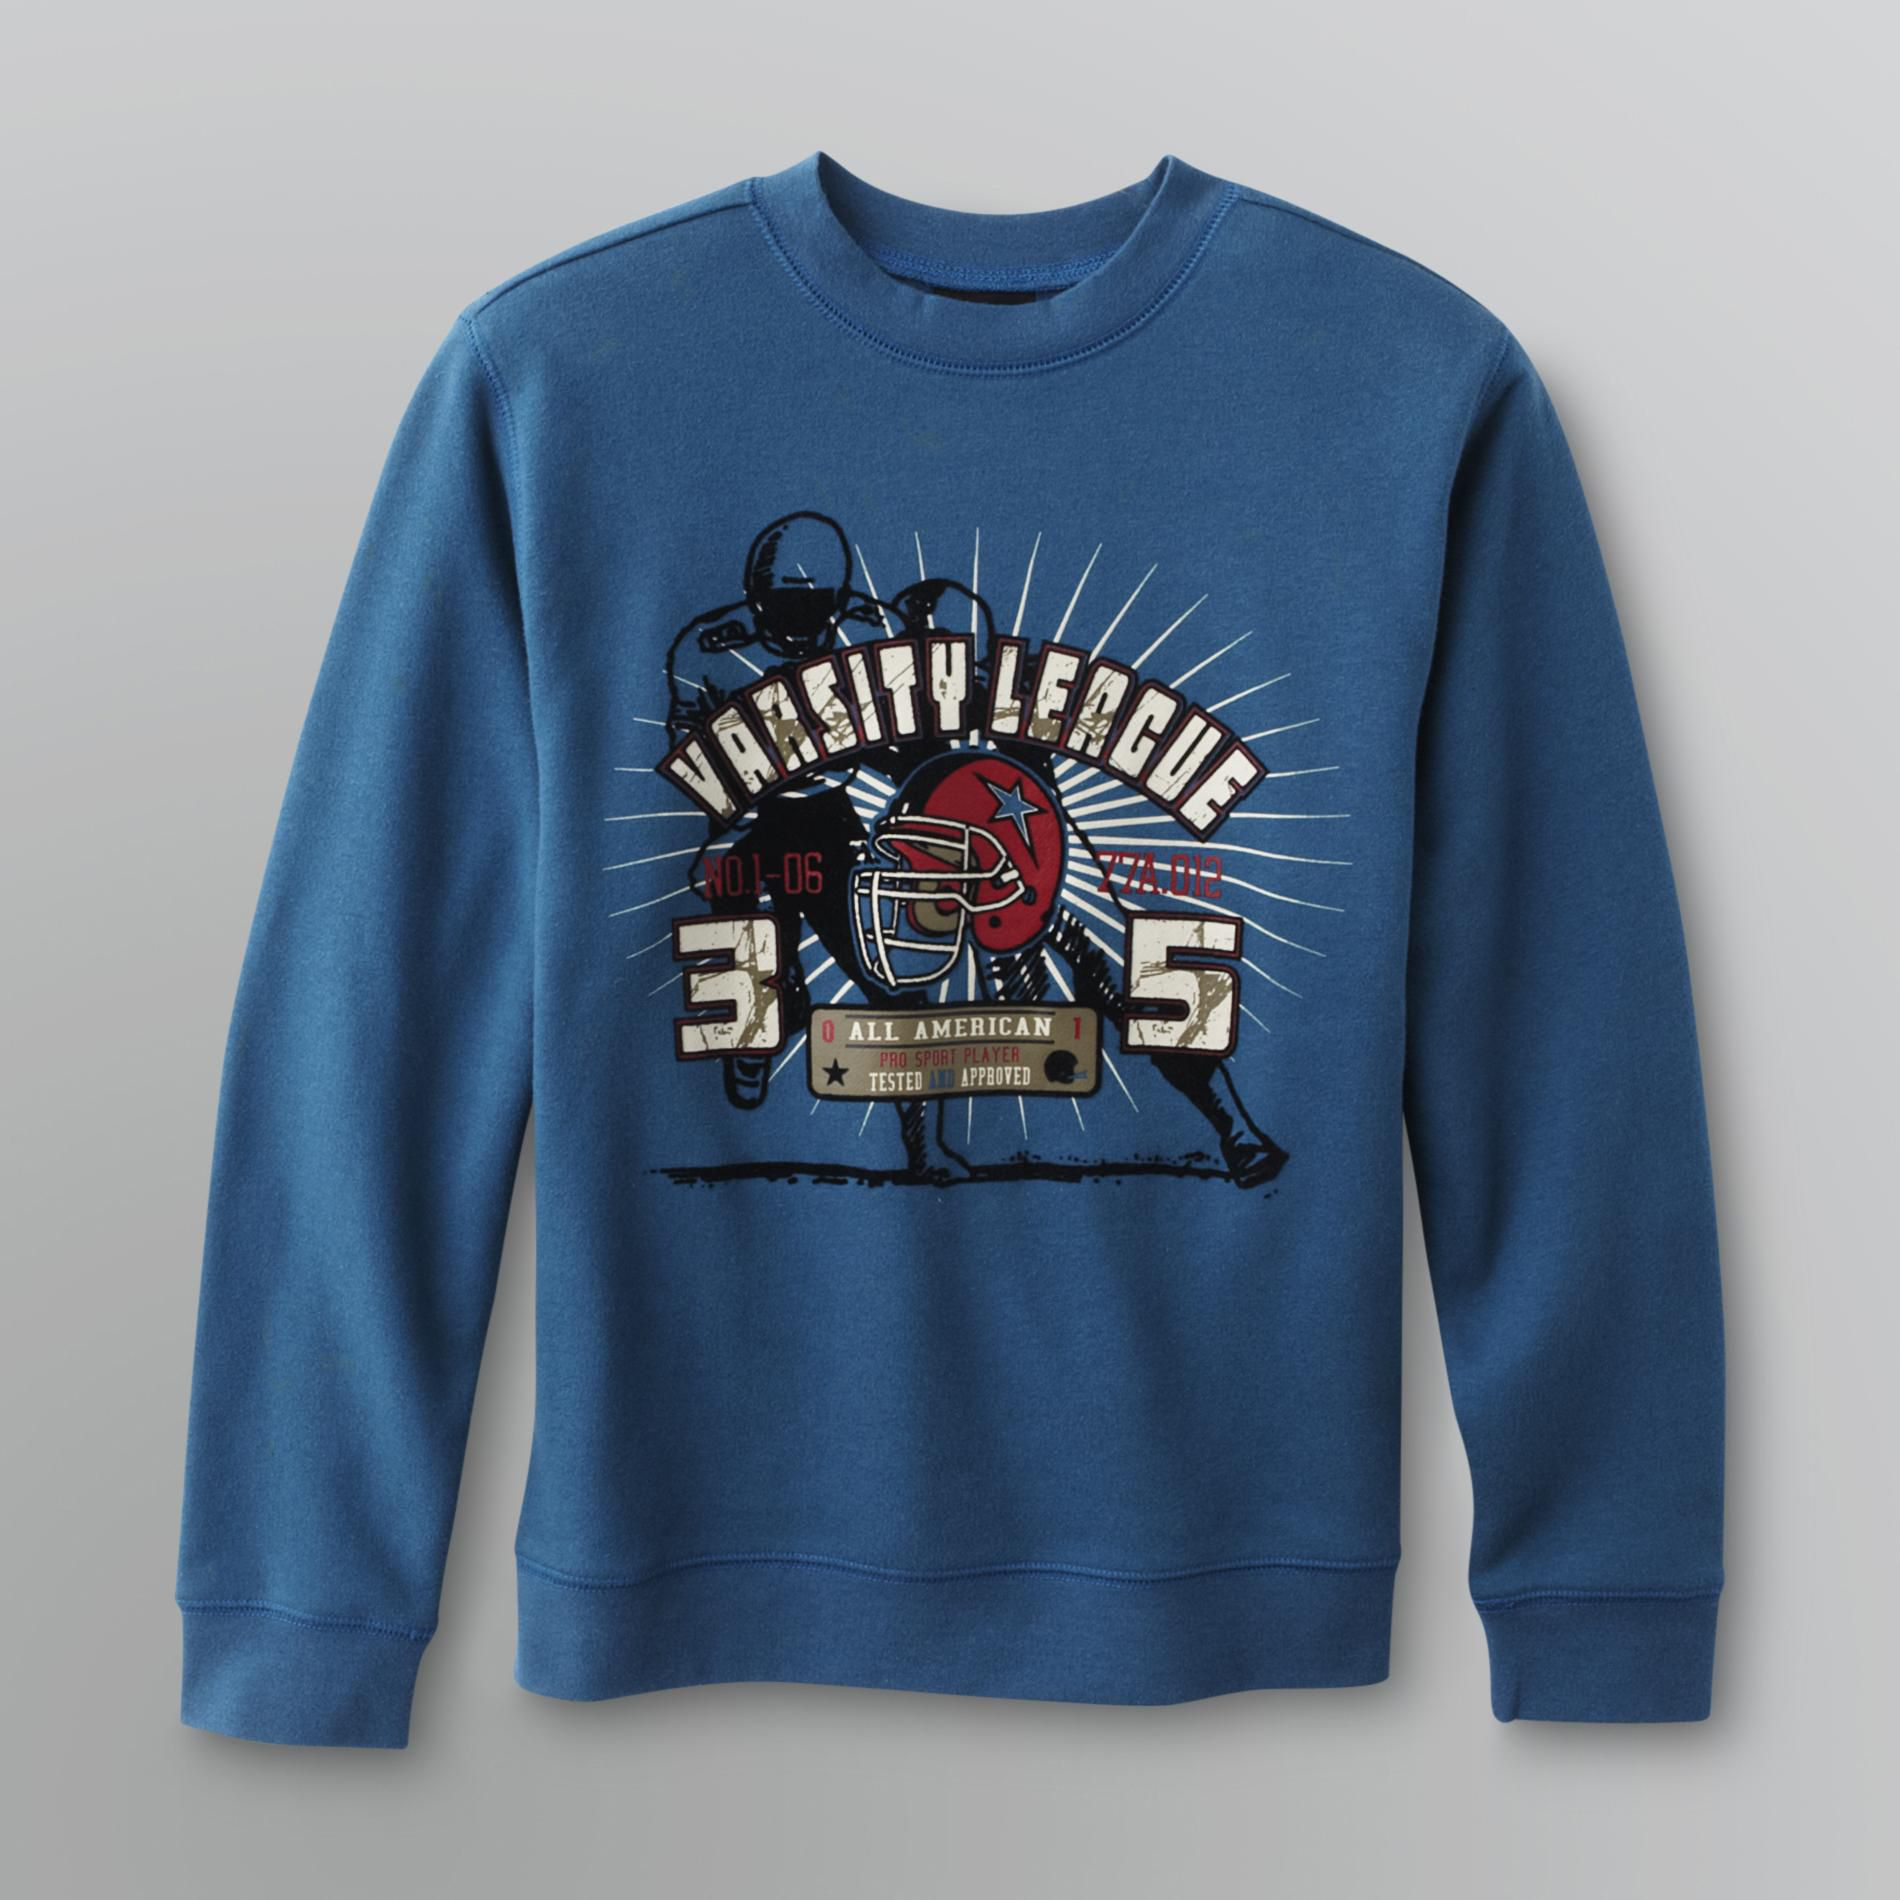 Boy's Football Graphic Sweatshirt